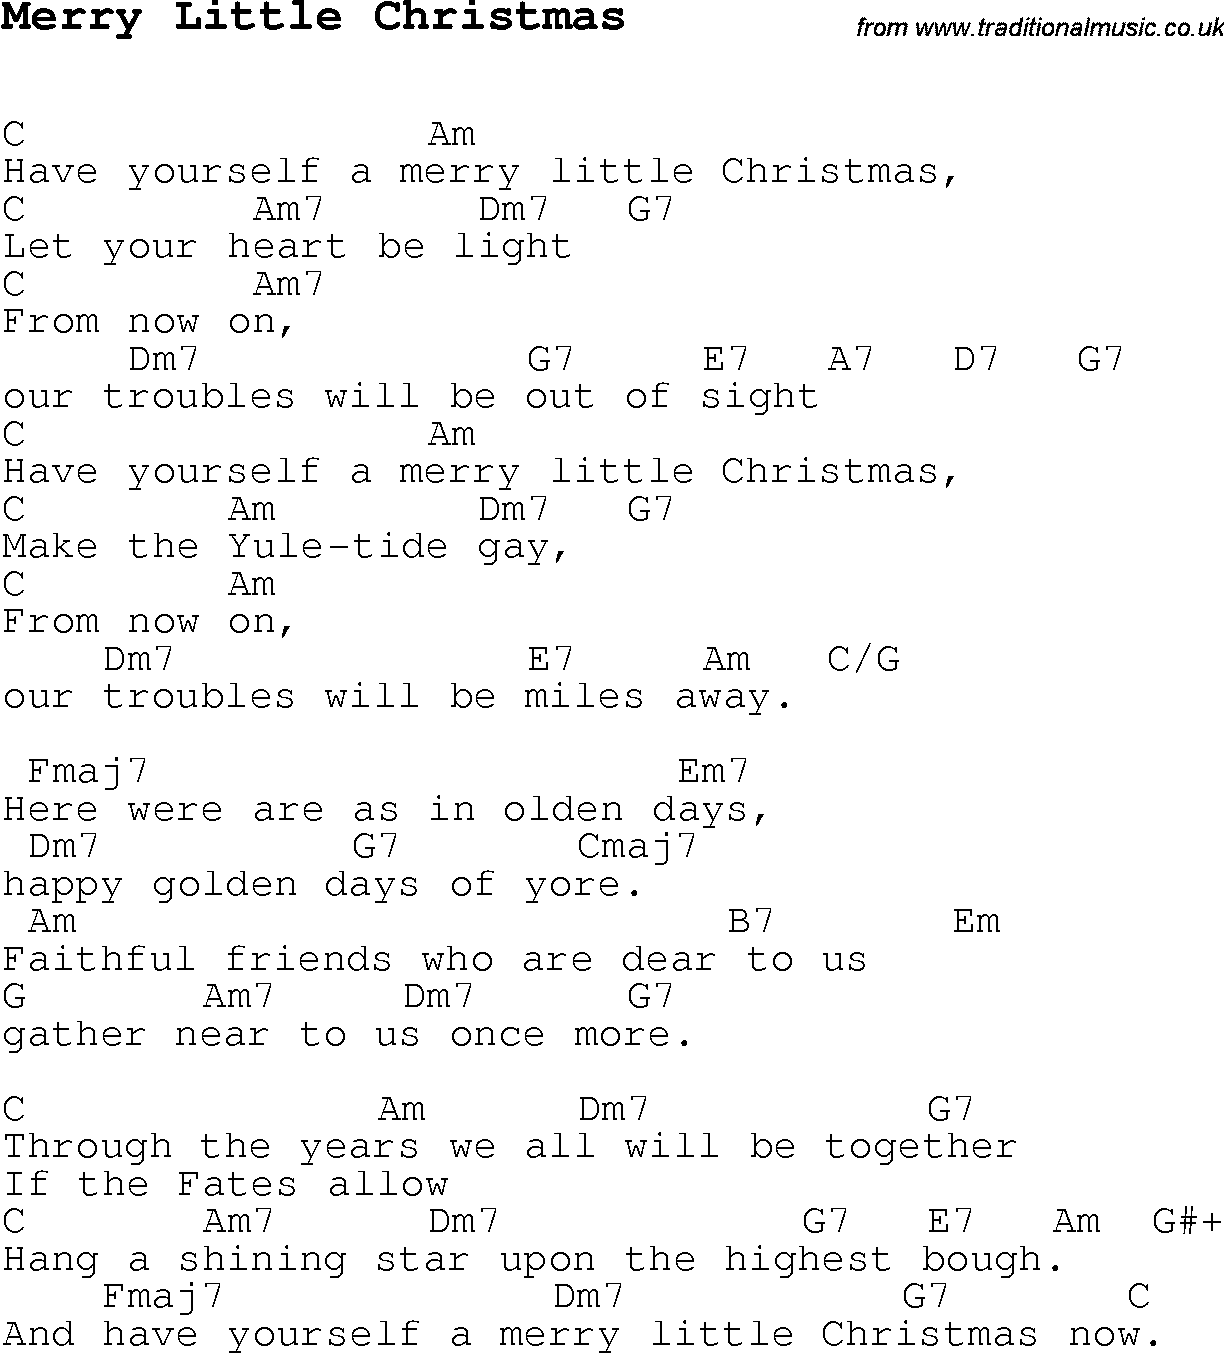 Christmas carol song lyrics with chords for merry little christmas